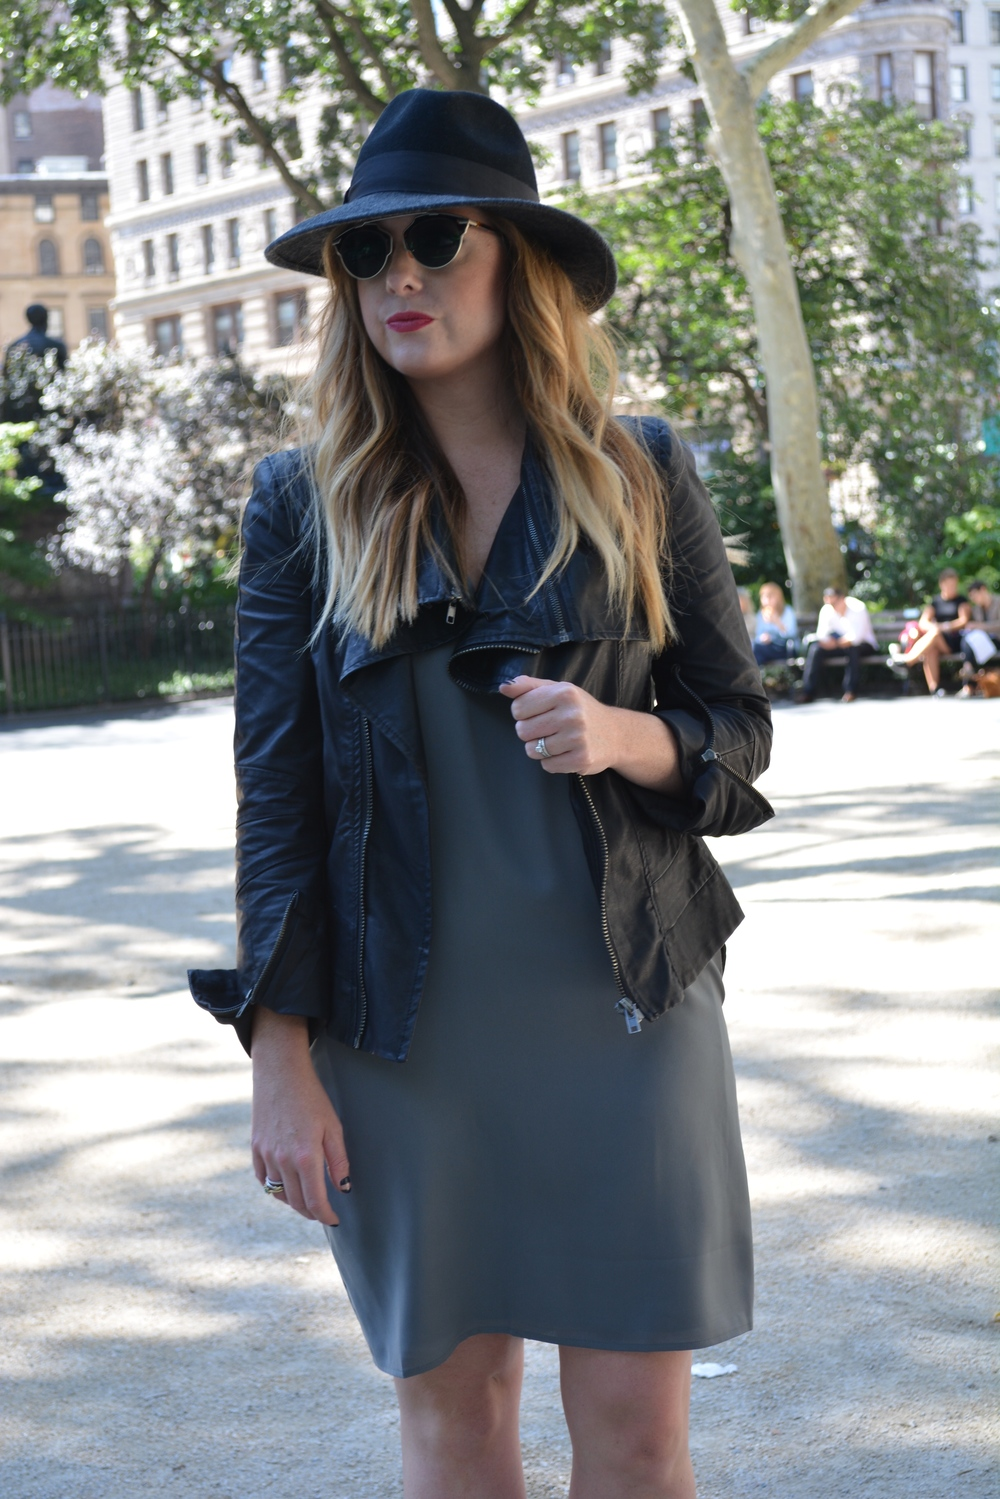 Moto jacket, shift dress outfit